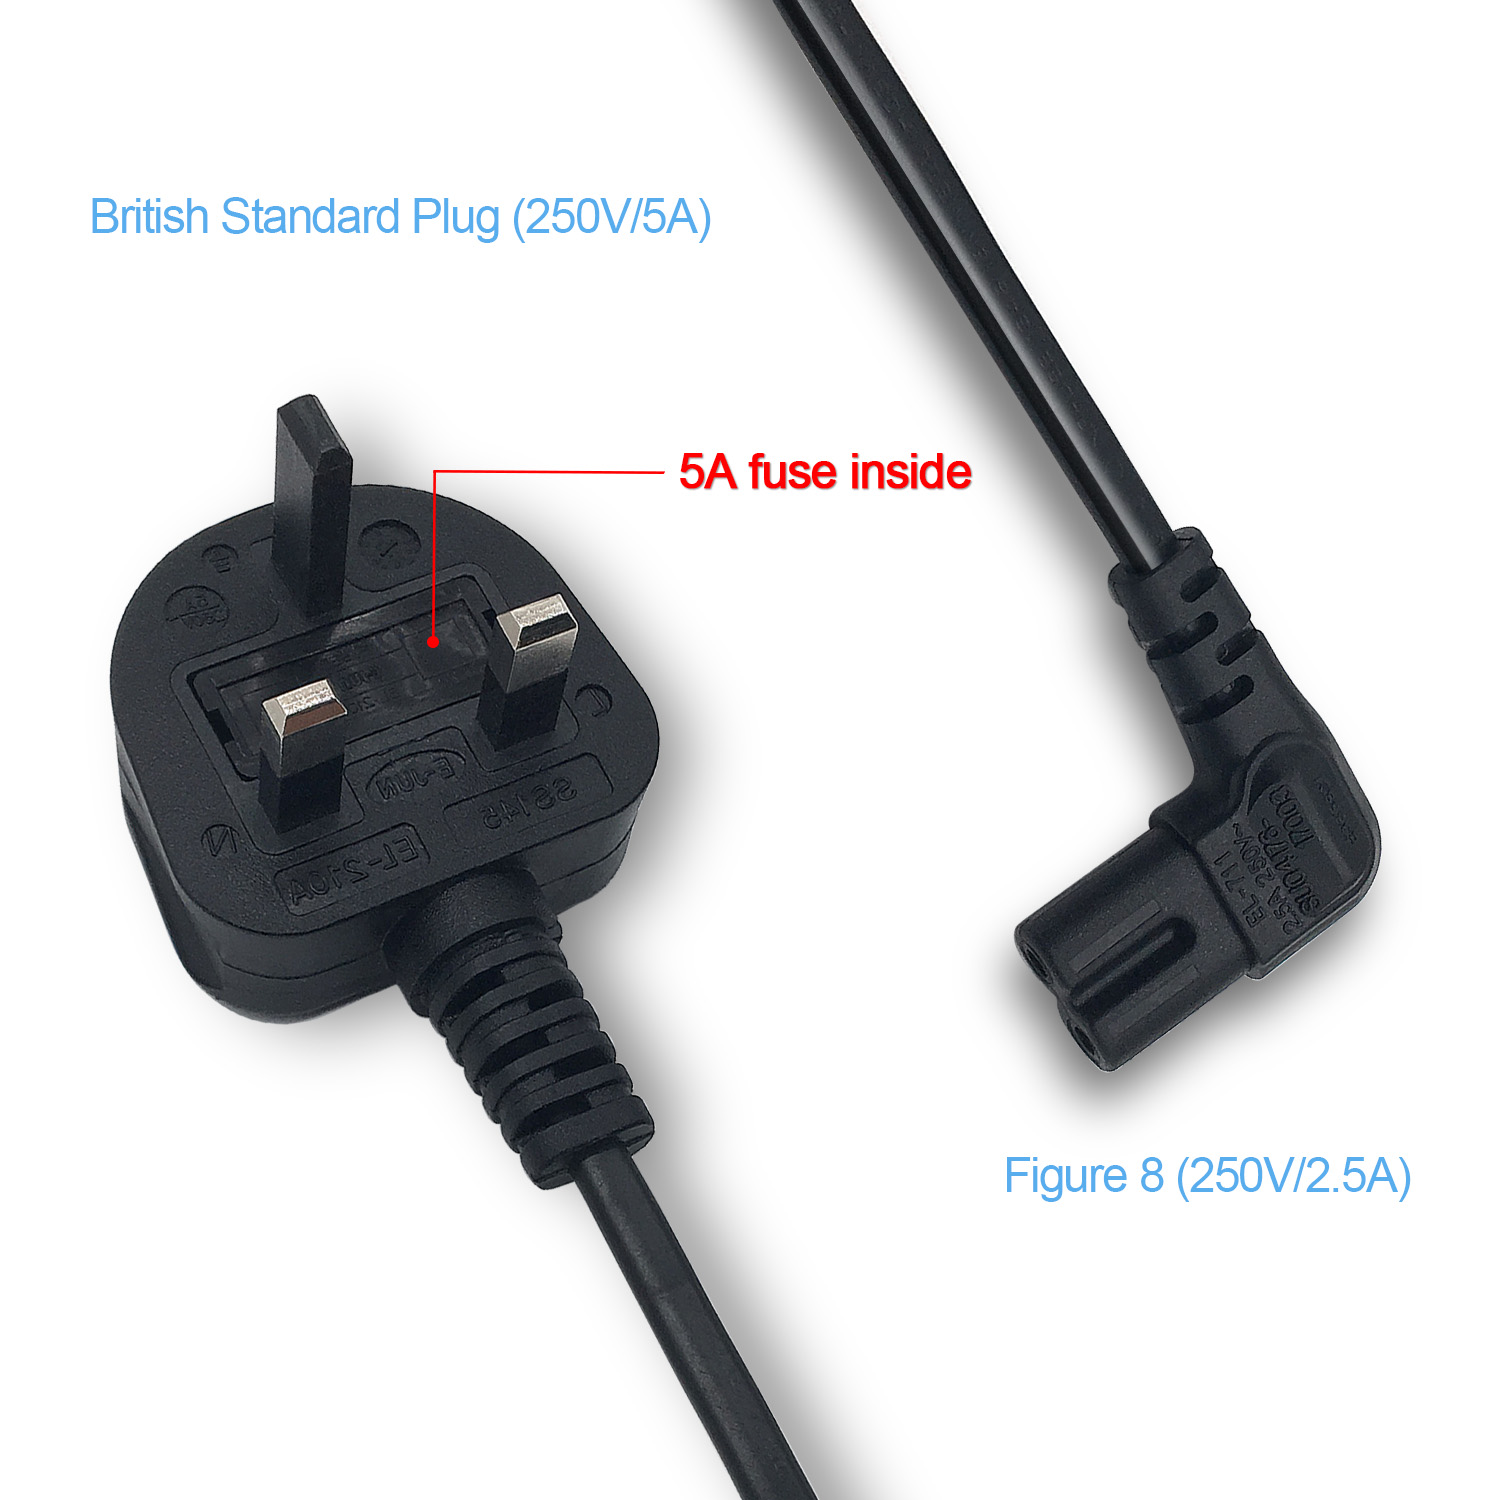 AC Power Cable C7 Mains Cable 5FT/1.5M For Projector/PS3 Slim/Sky receiver/Camera Charge etc